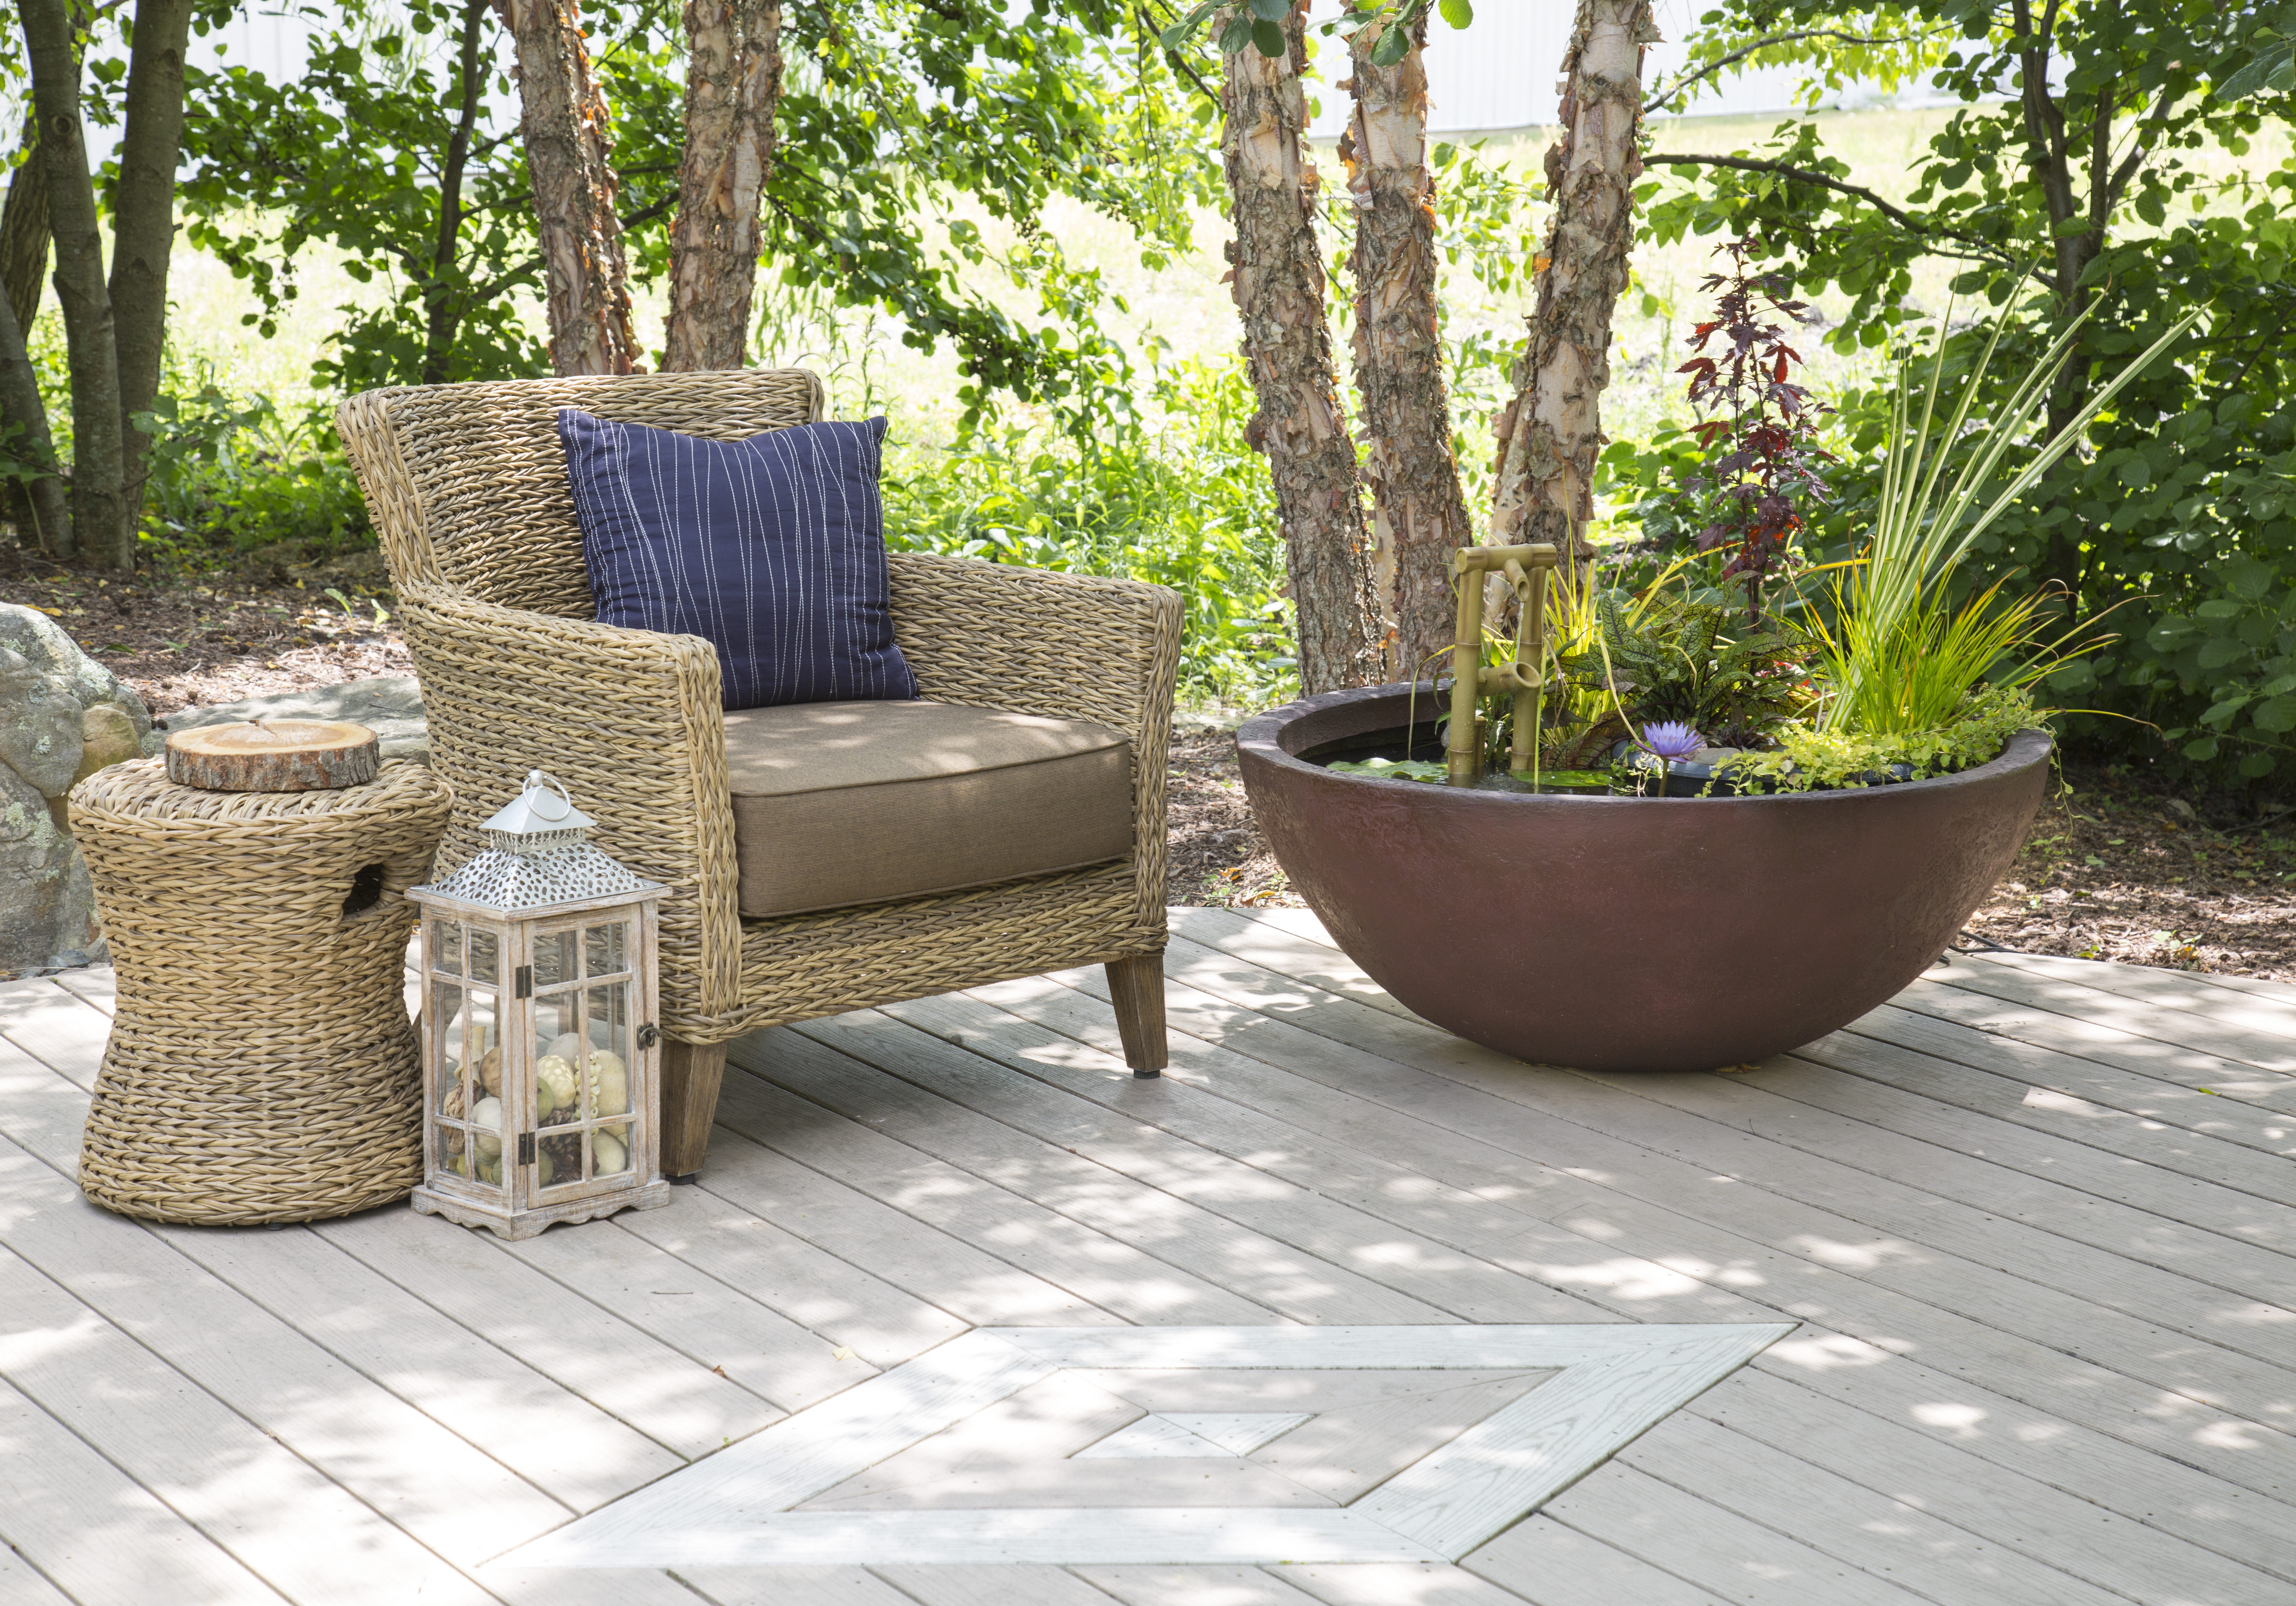 Crafting Outdoor Living Throughout Maryland, DC U0026 Northern Virginia